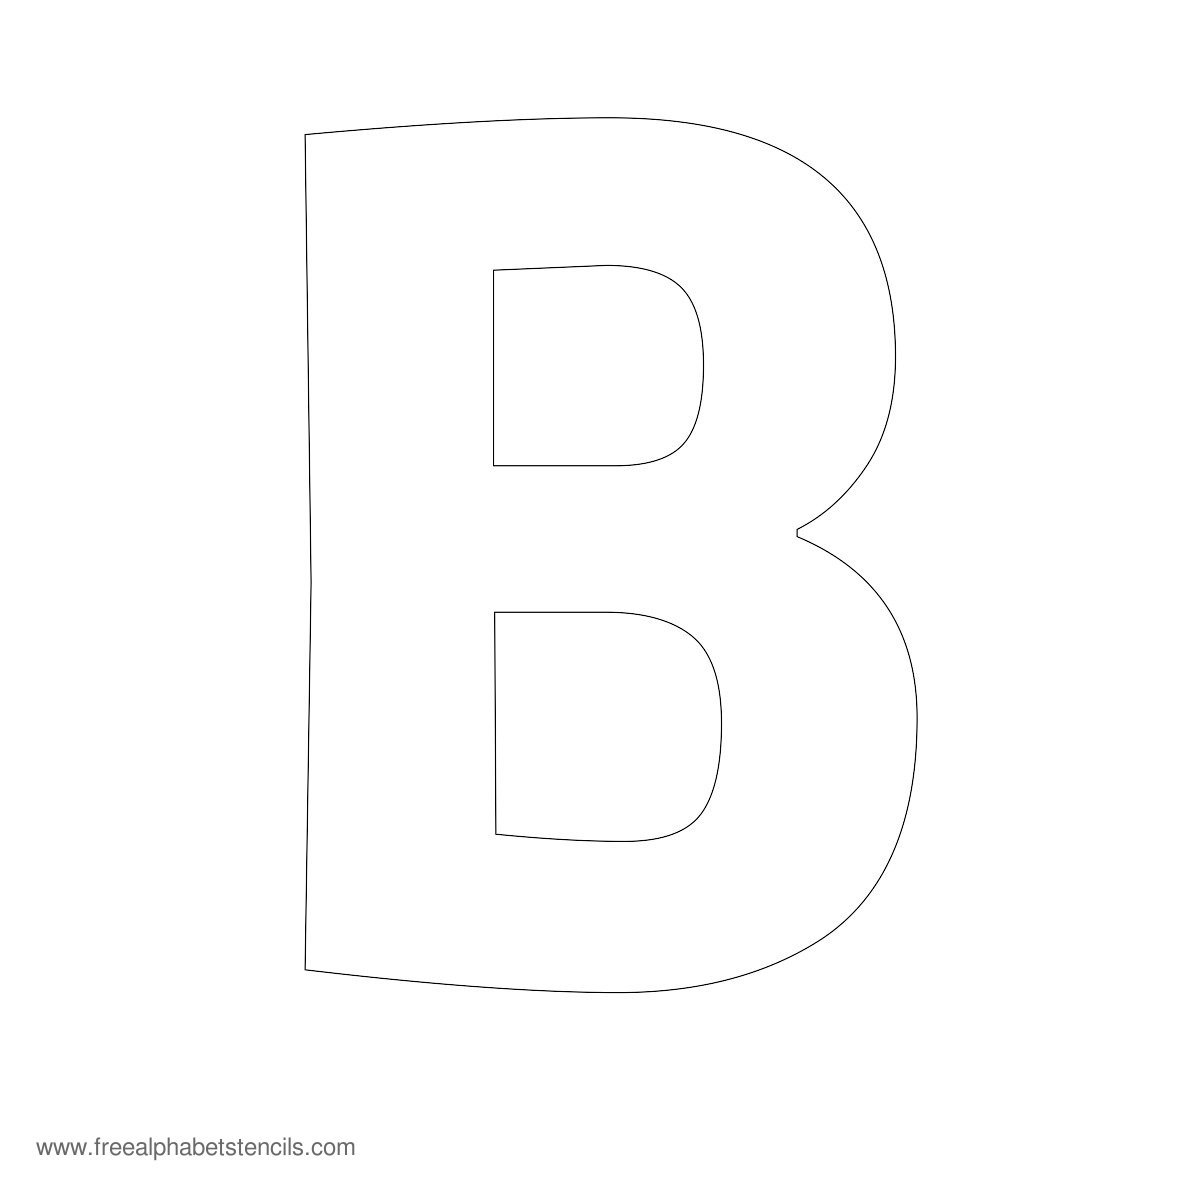 6 Images of Free Printable Letter Stencils B